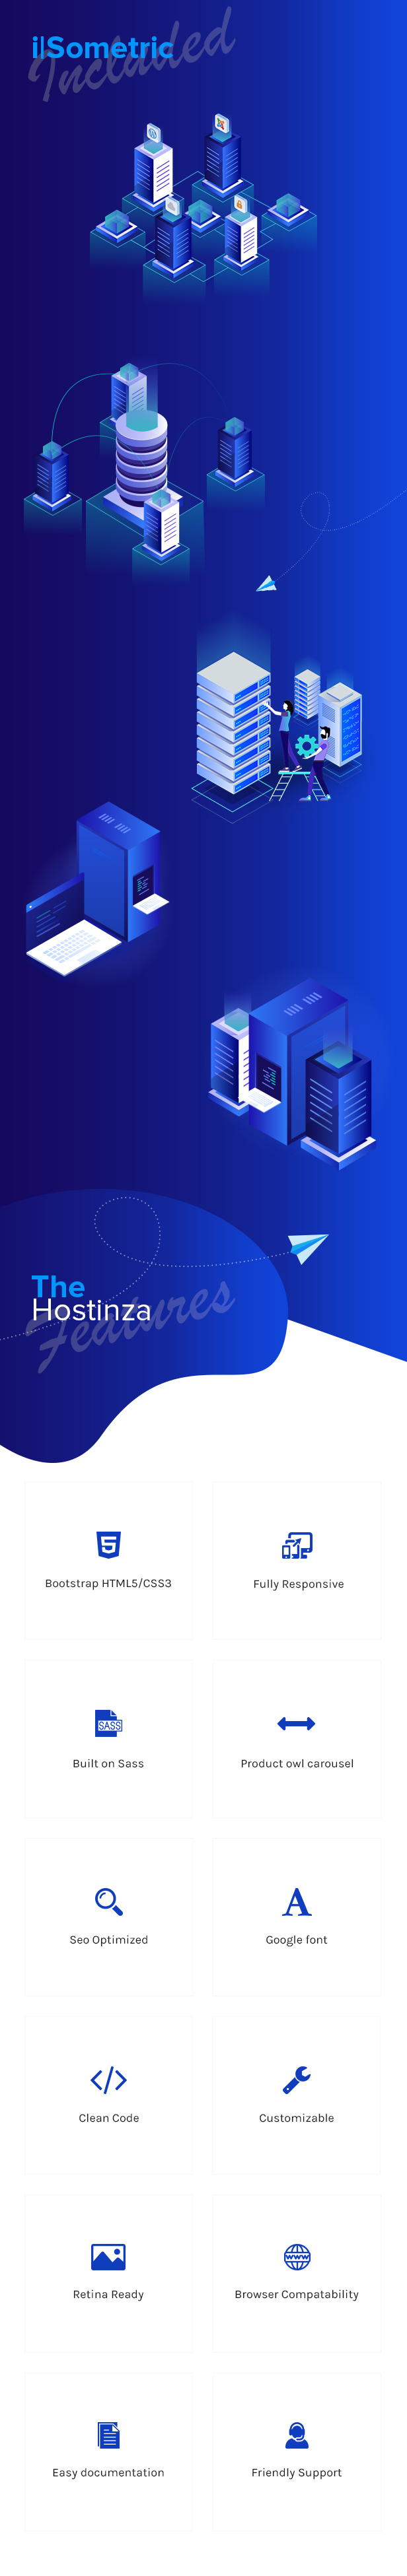 description 2 - Hostinza - Isometric Web Hosting, Domain and WHMCS Html Hosting Template